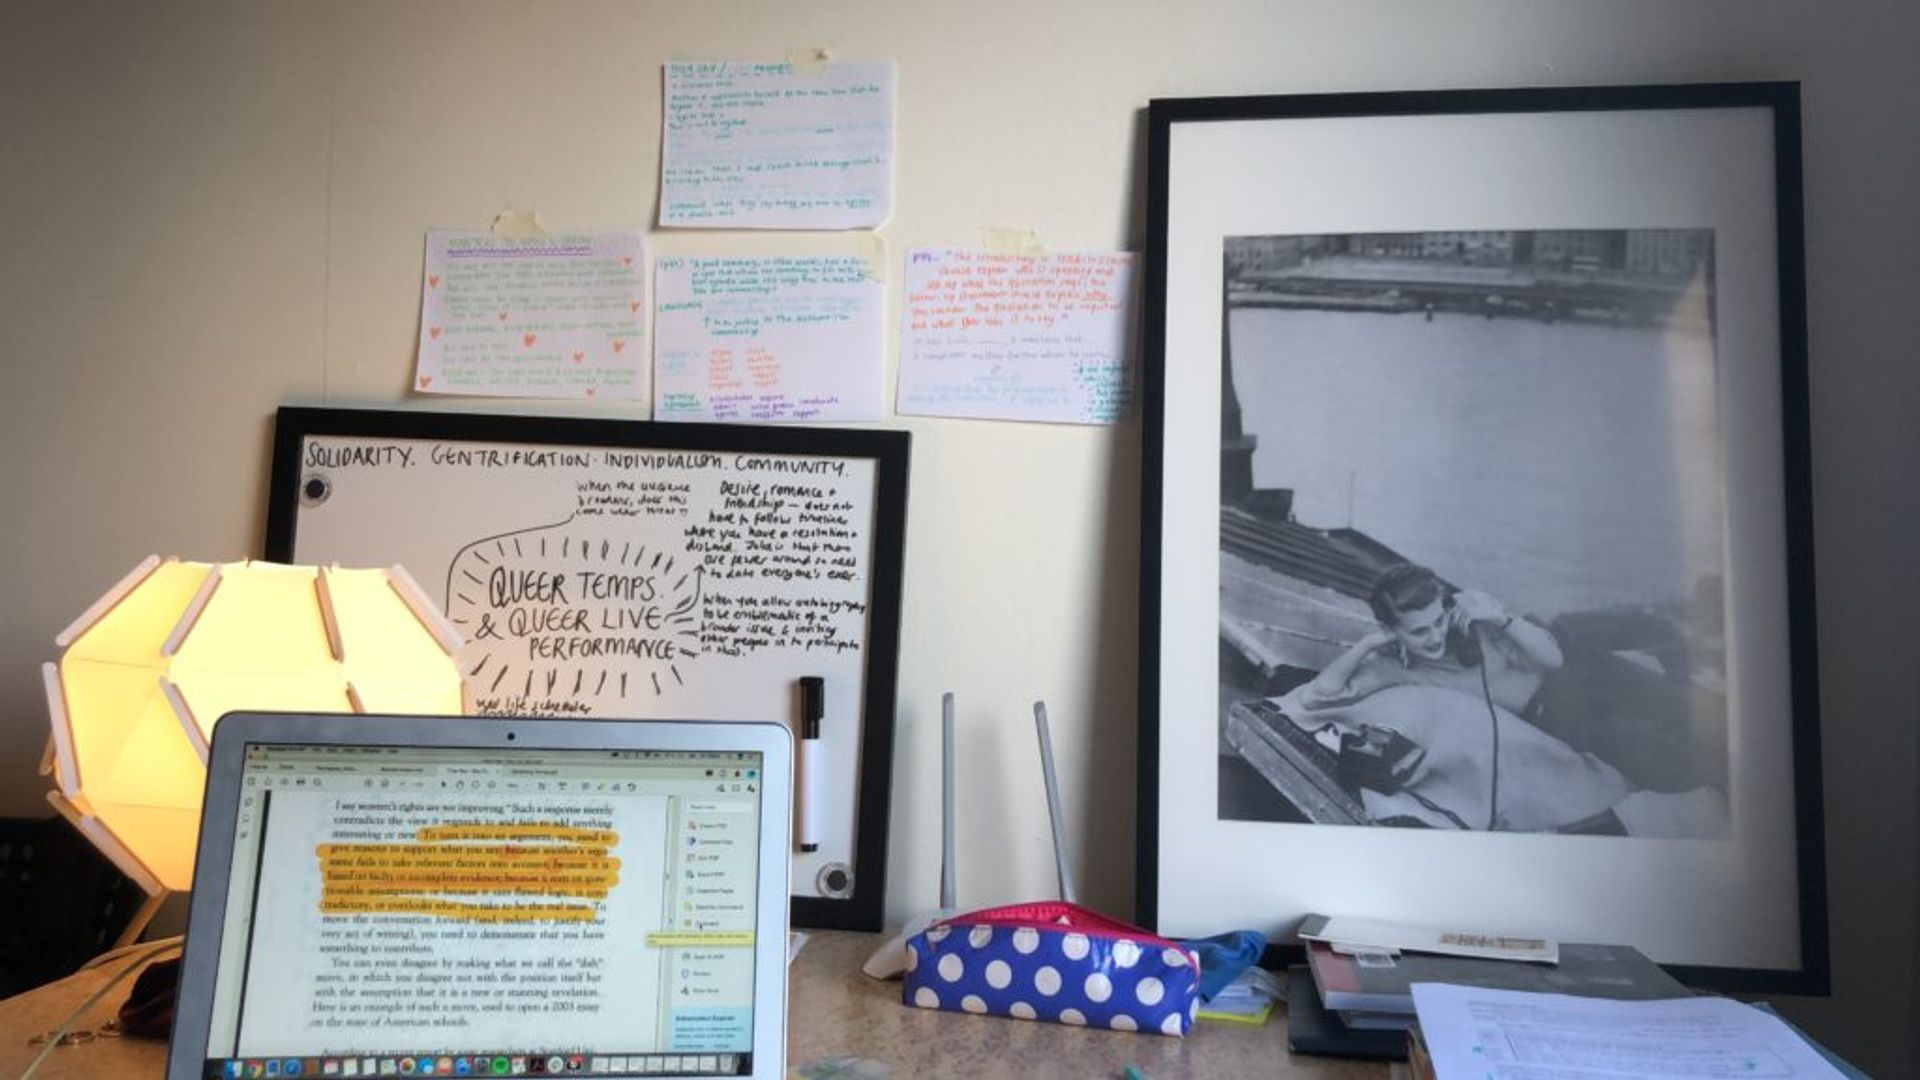 Emma's study station, featuring a laptop, notes, books and a lamp.